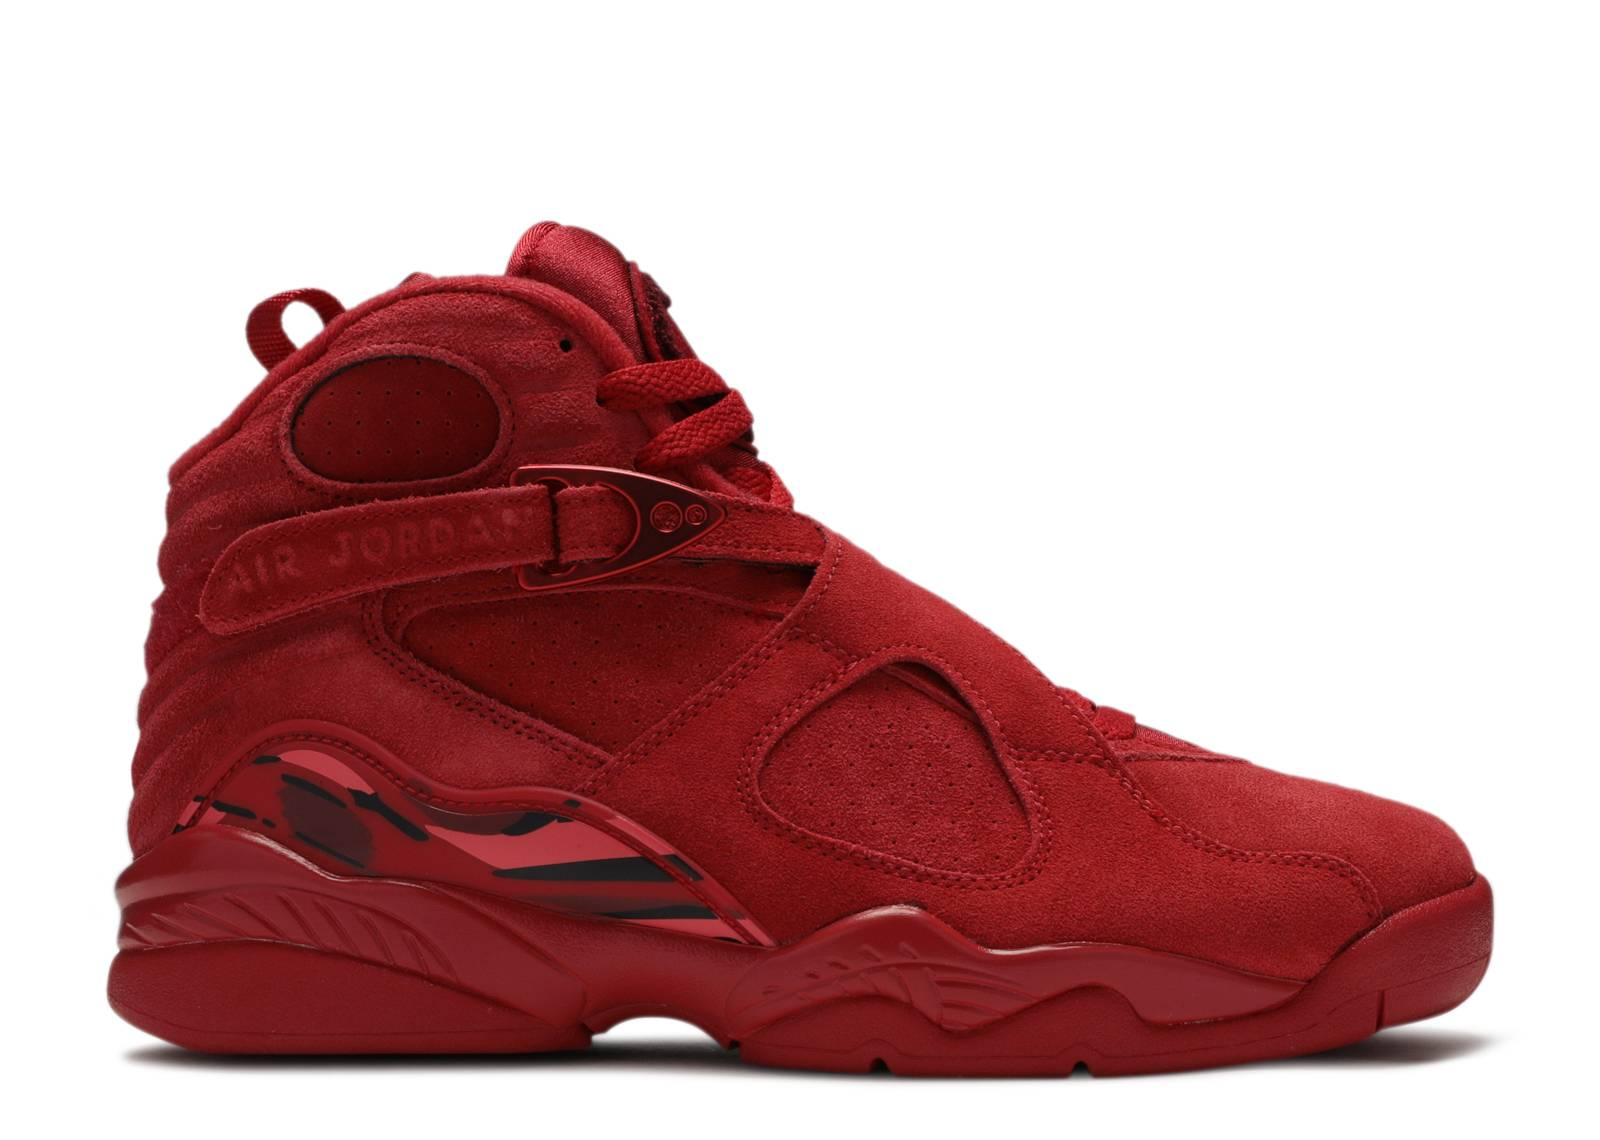 premium selection 776e3 ba6bc wmns air jordan 8 retro vday